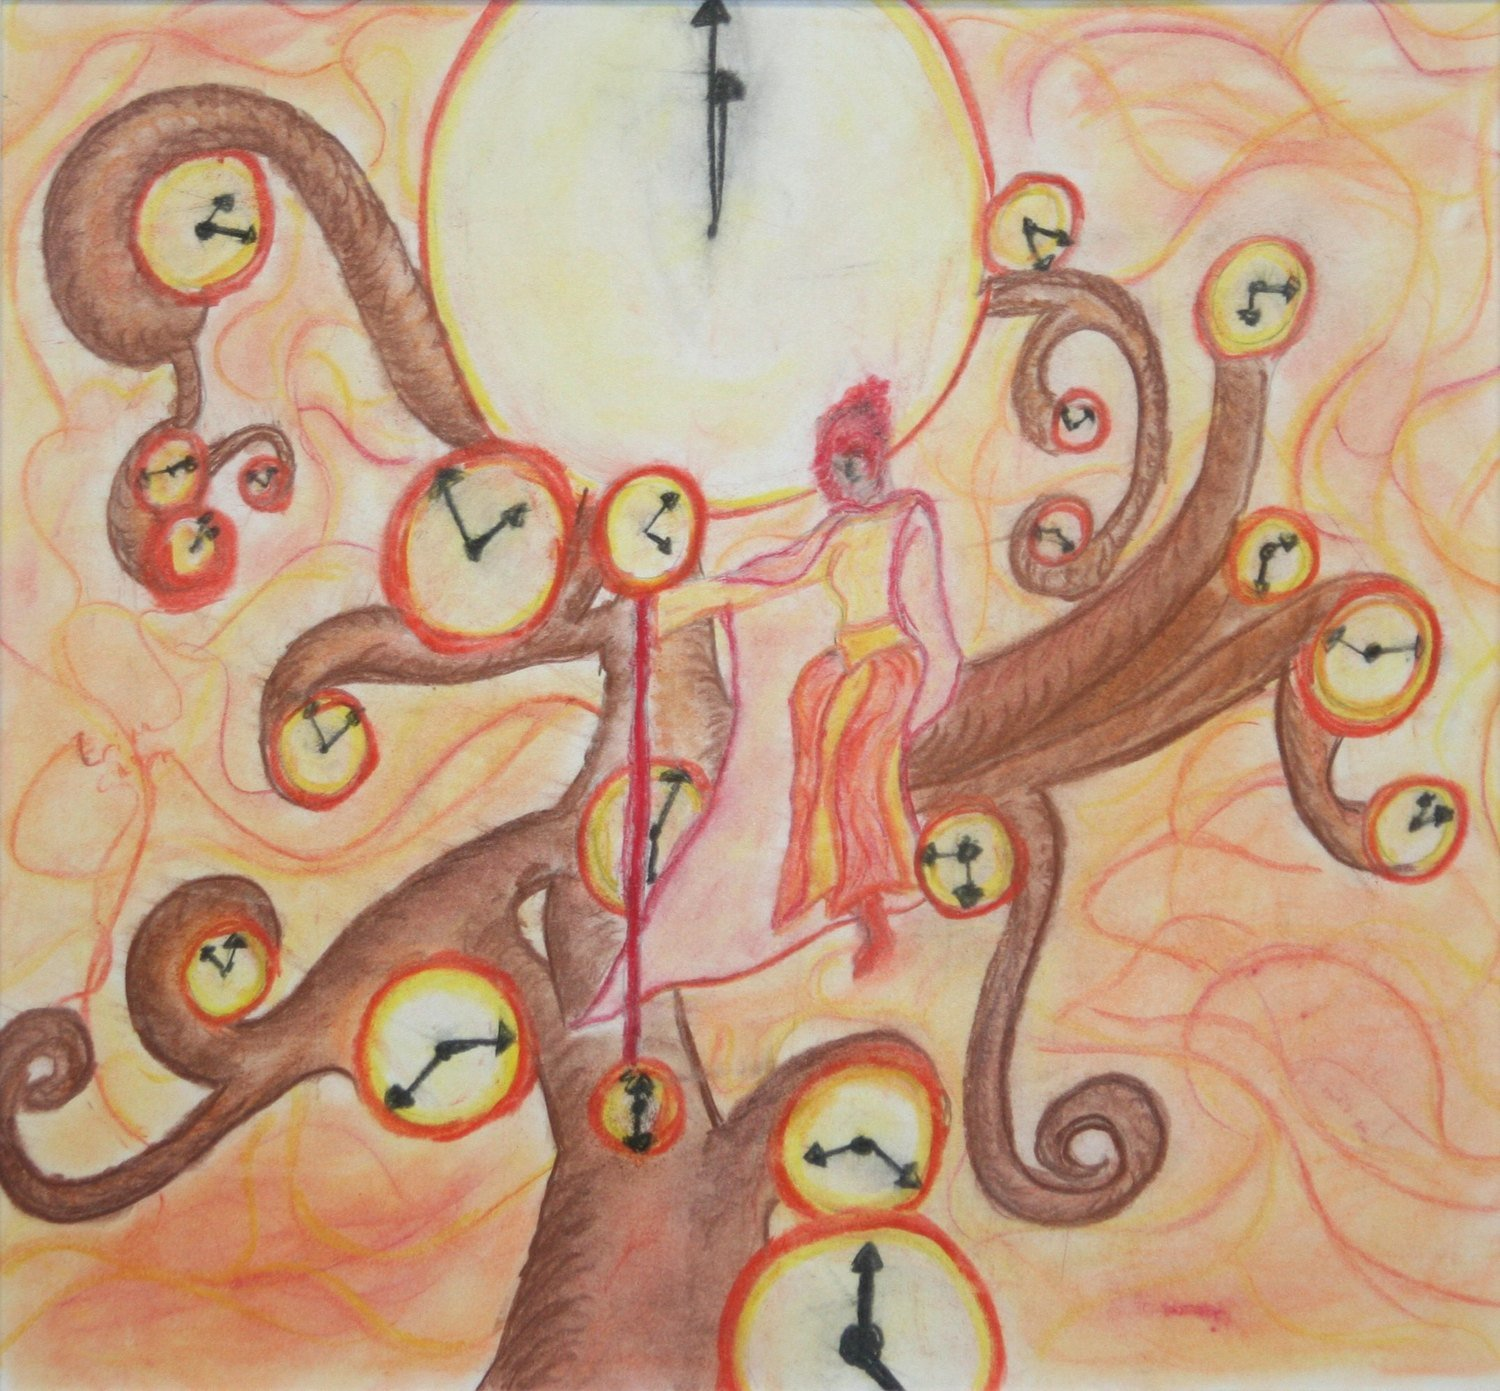 Incarnations of Time